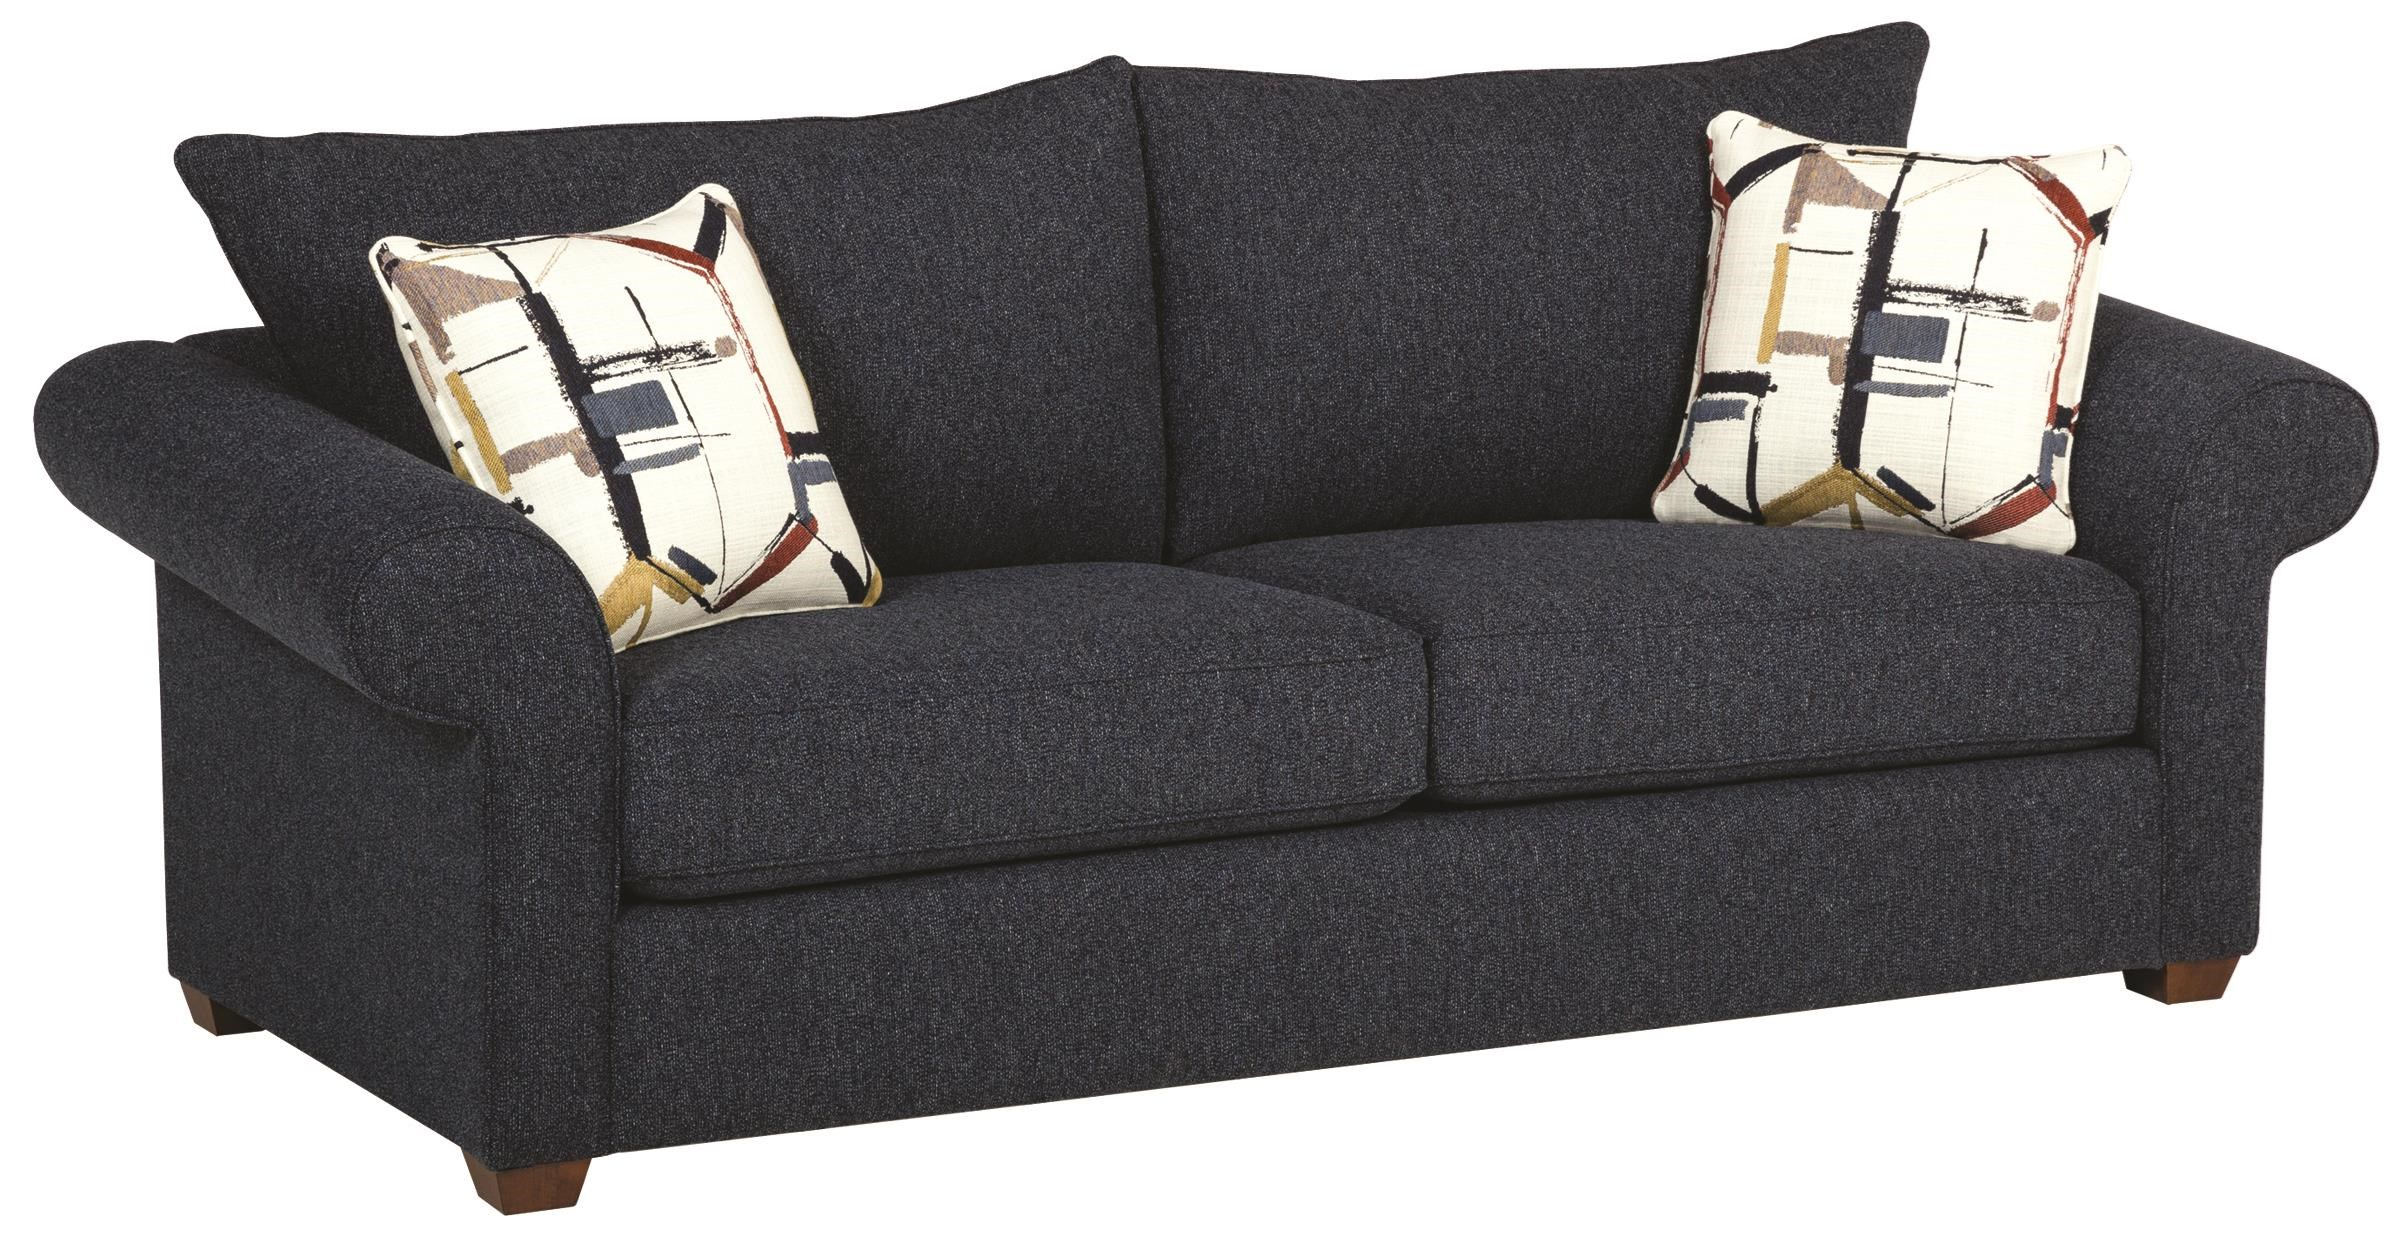 29660 Sofa by Sunset Home at Sadler's Home Furnishings